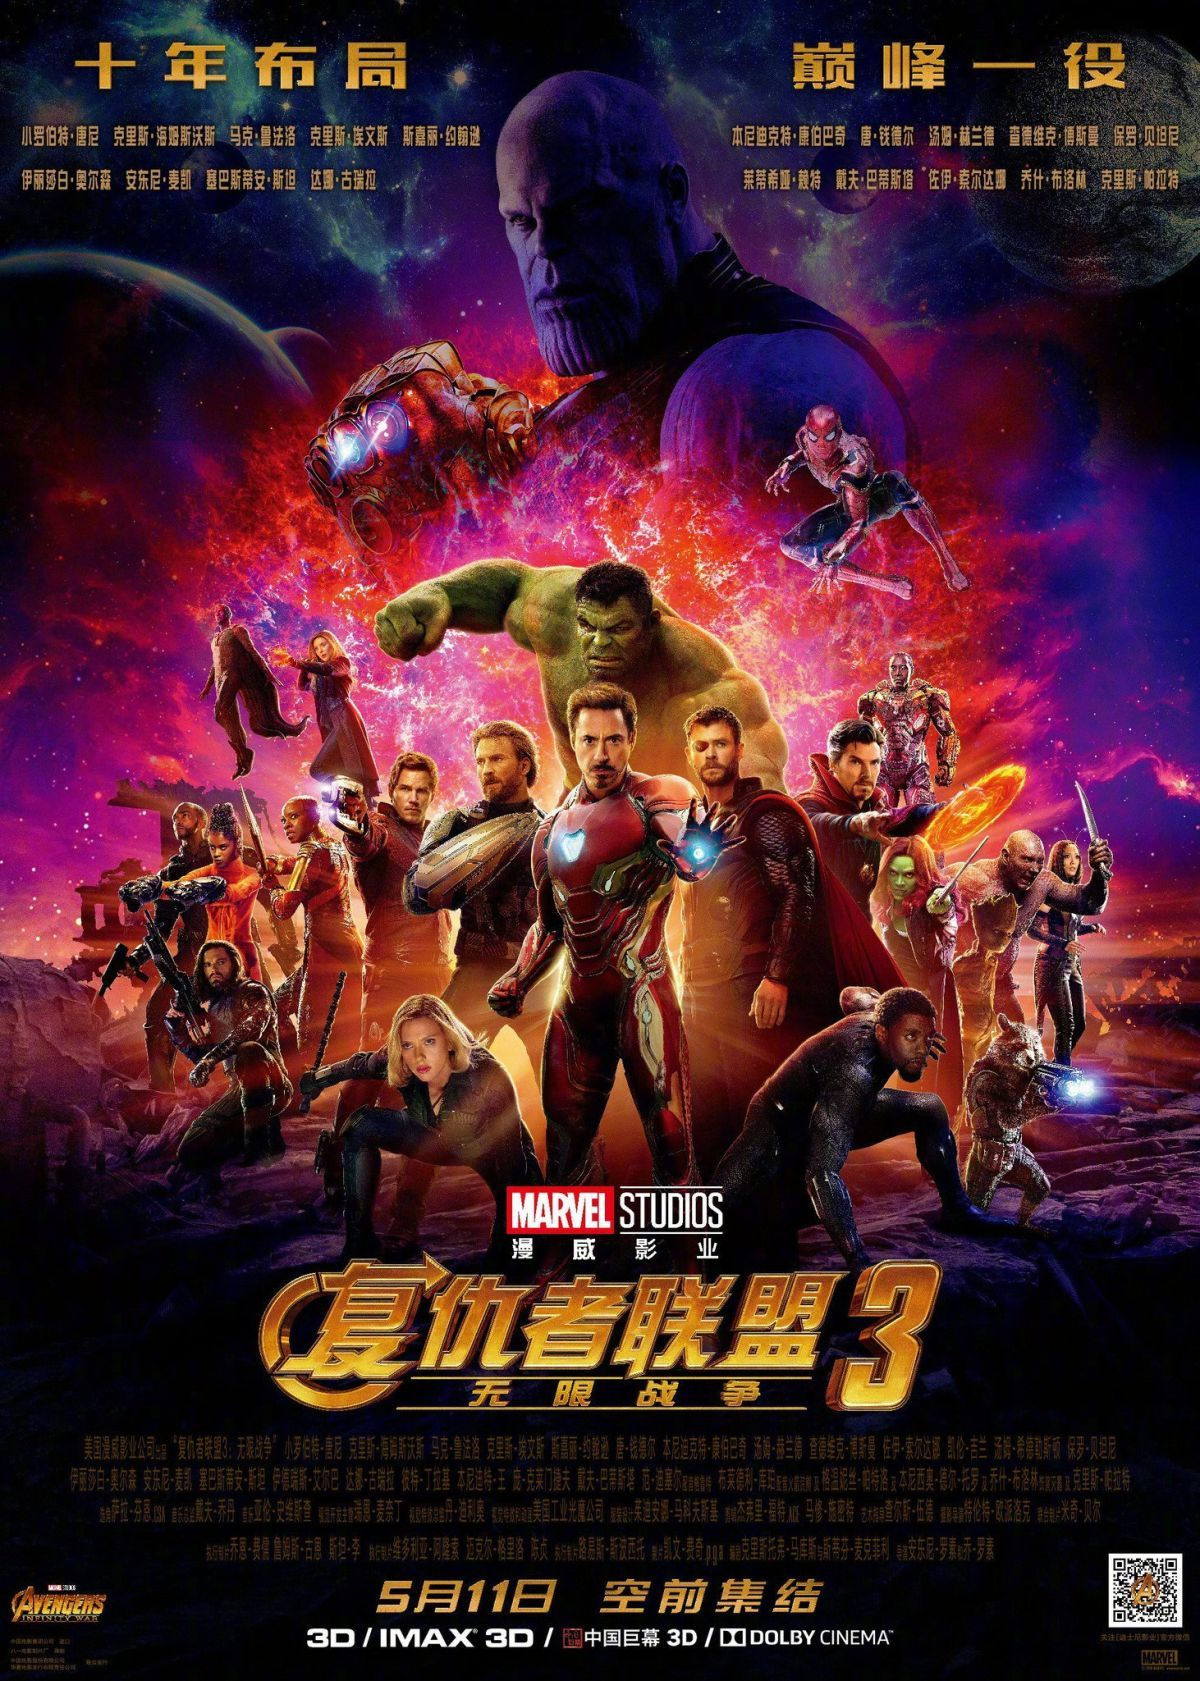 avengers: infinity war china: release date & poster | cosmic book